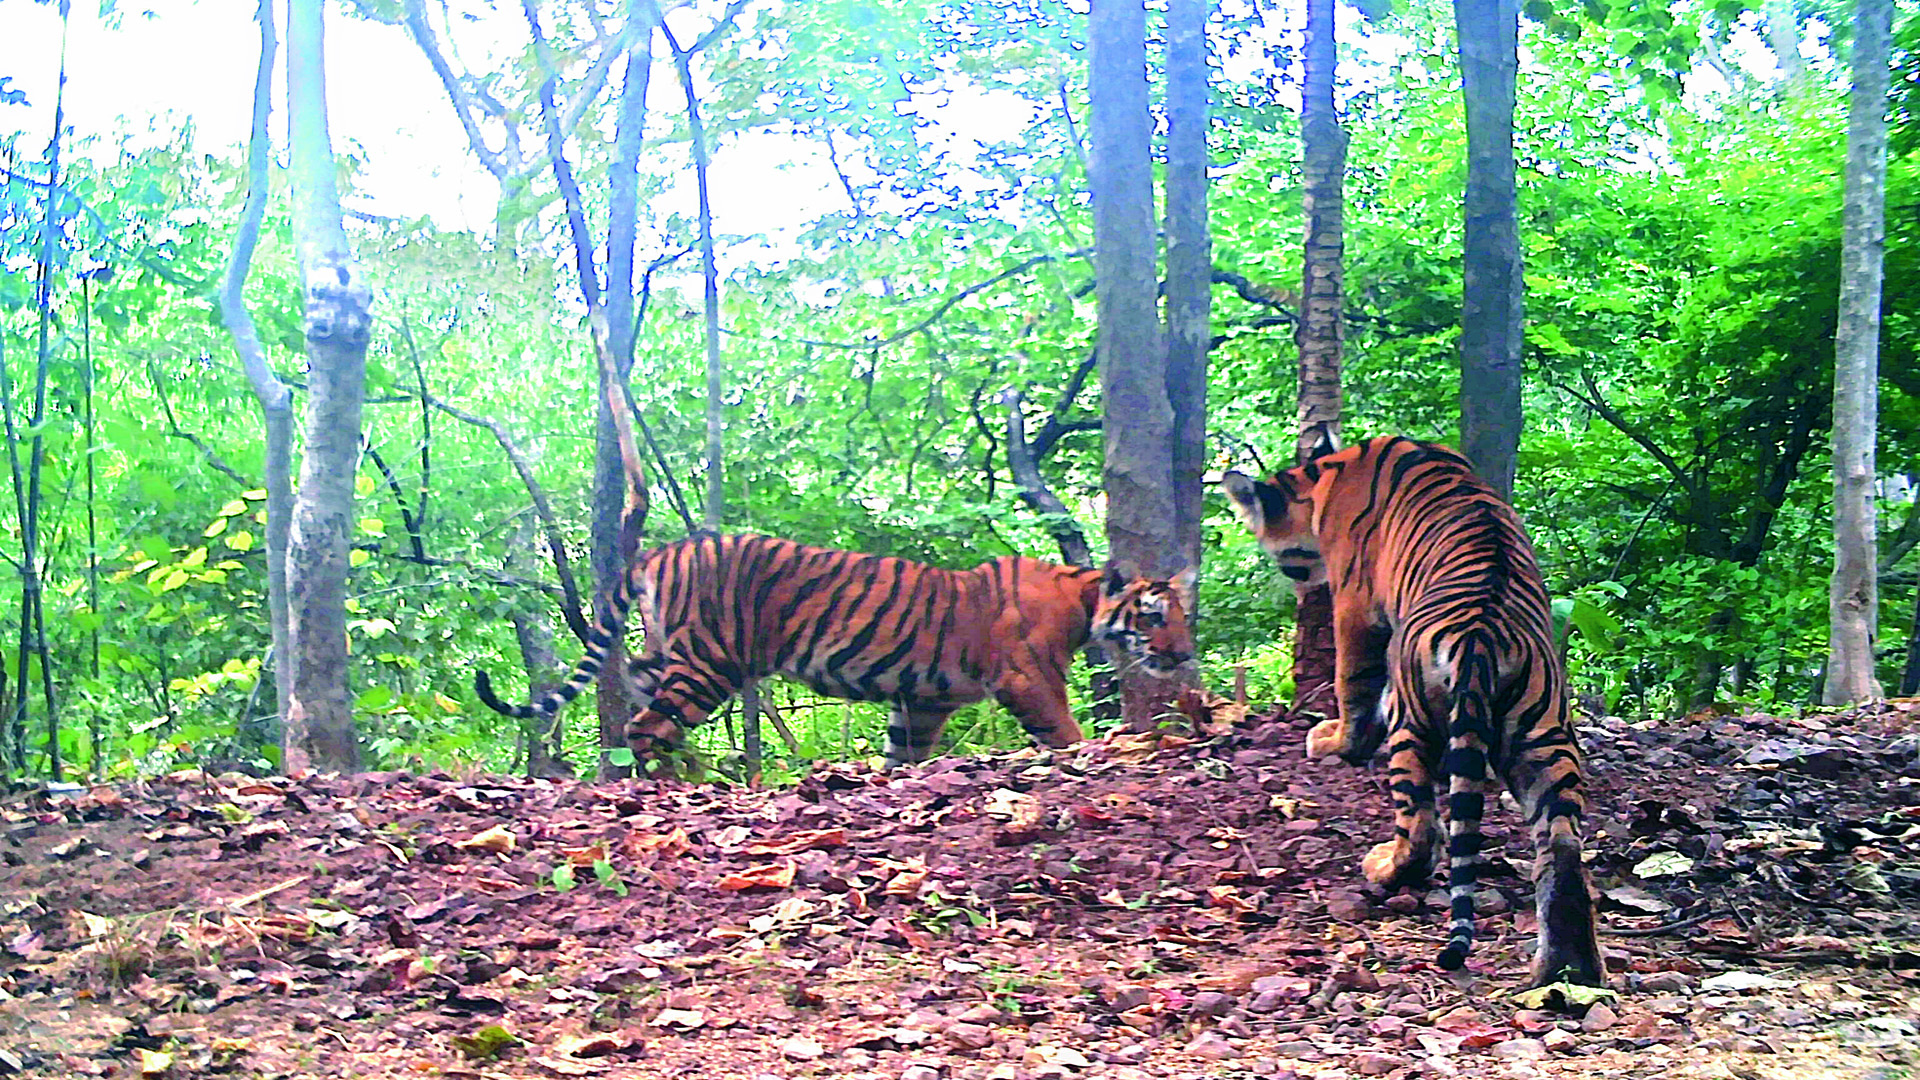 A pair of tigers captured in one of the camera traps  at NSTR, Srisailam.